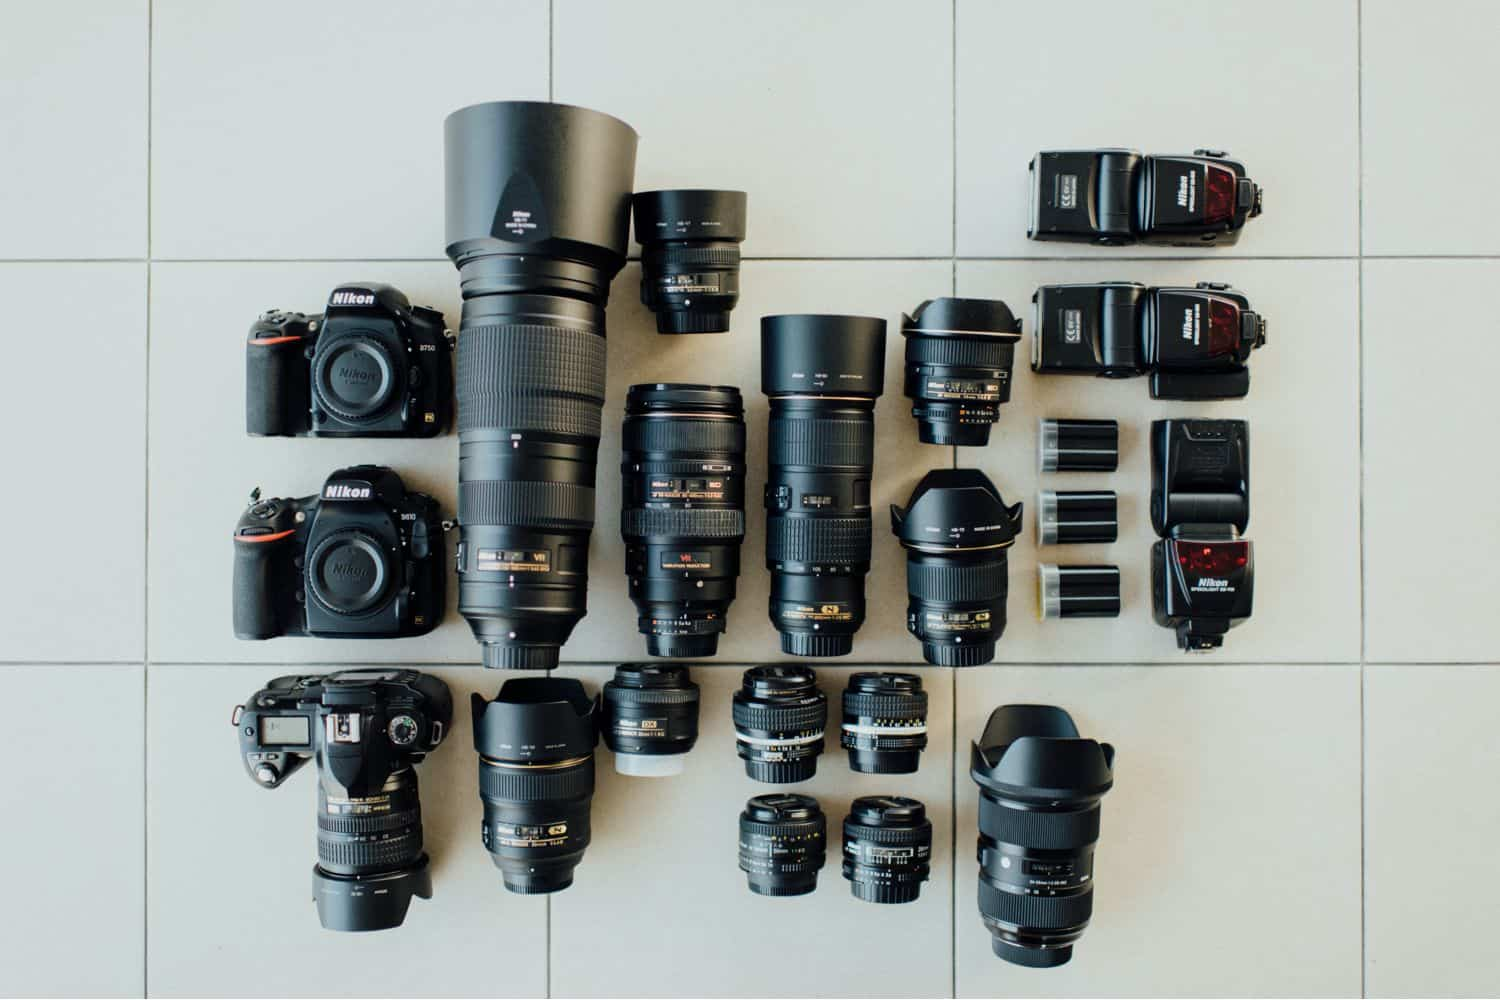 A collection of used camera lenses is laid out on a linoleum floor.